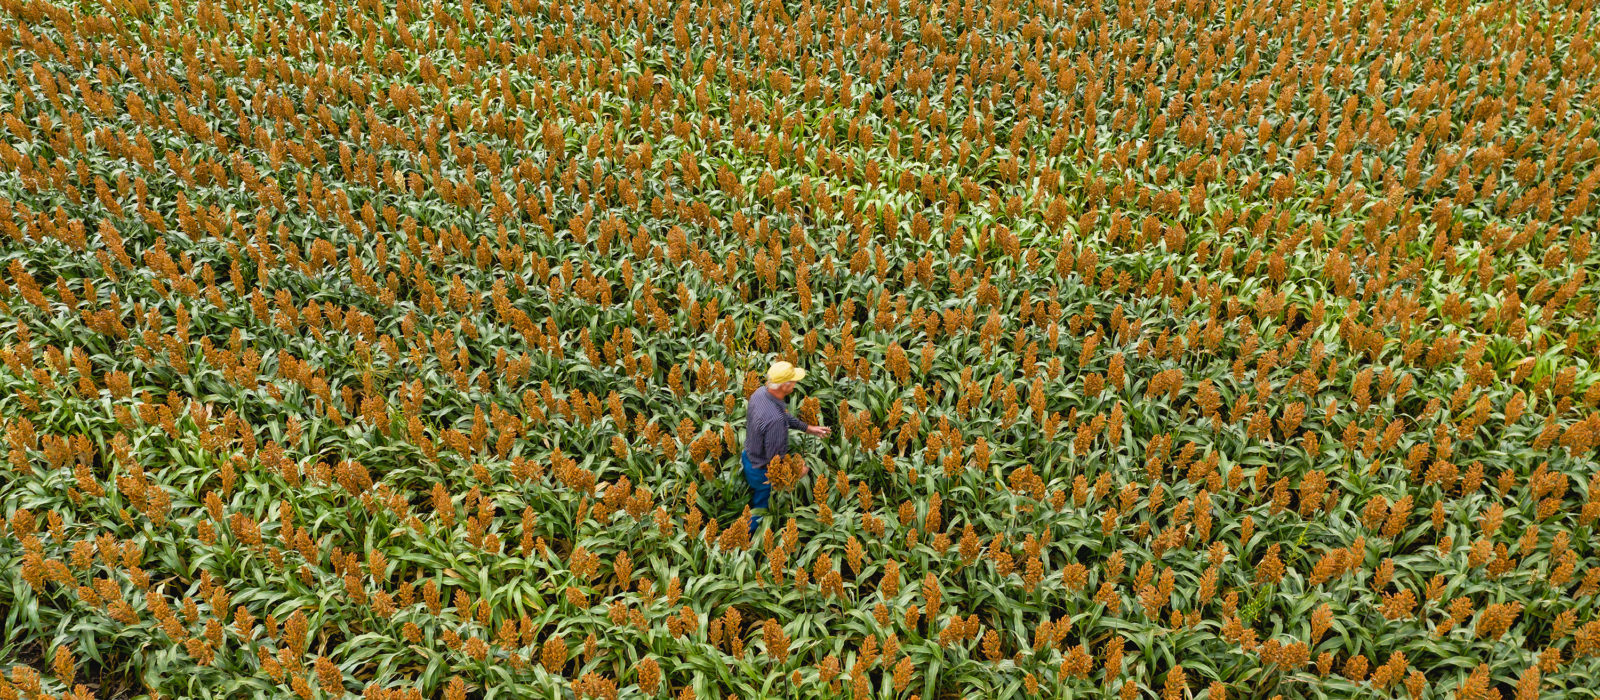 Overview of farmer in milo field